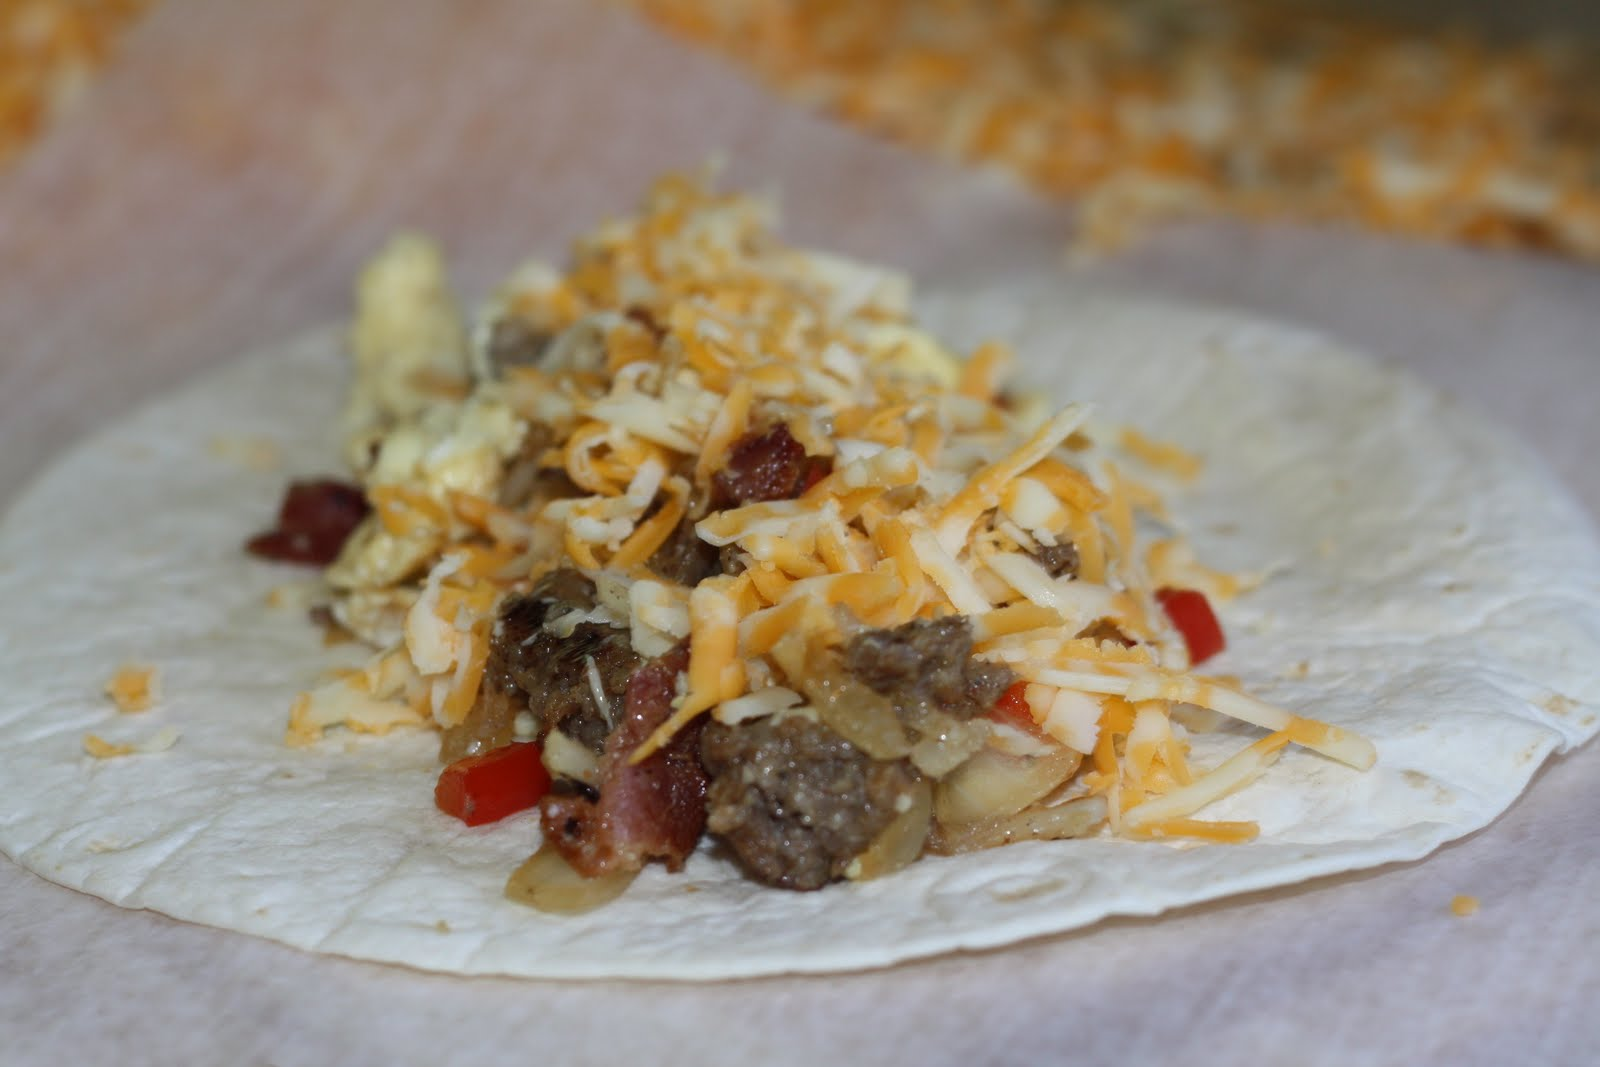 Life At Willow Cottage: A Bike Ride Picnic and Breakfast Burritos